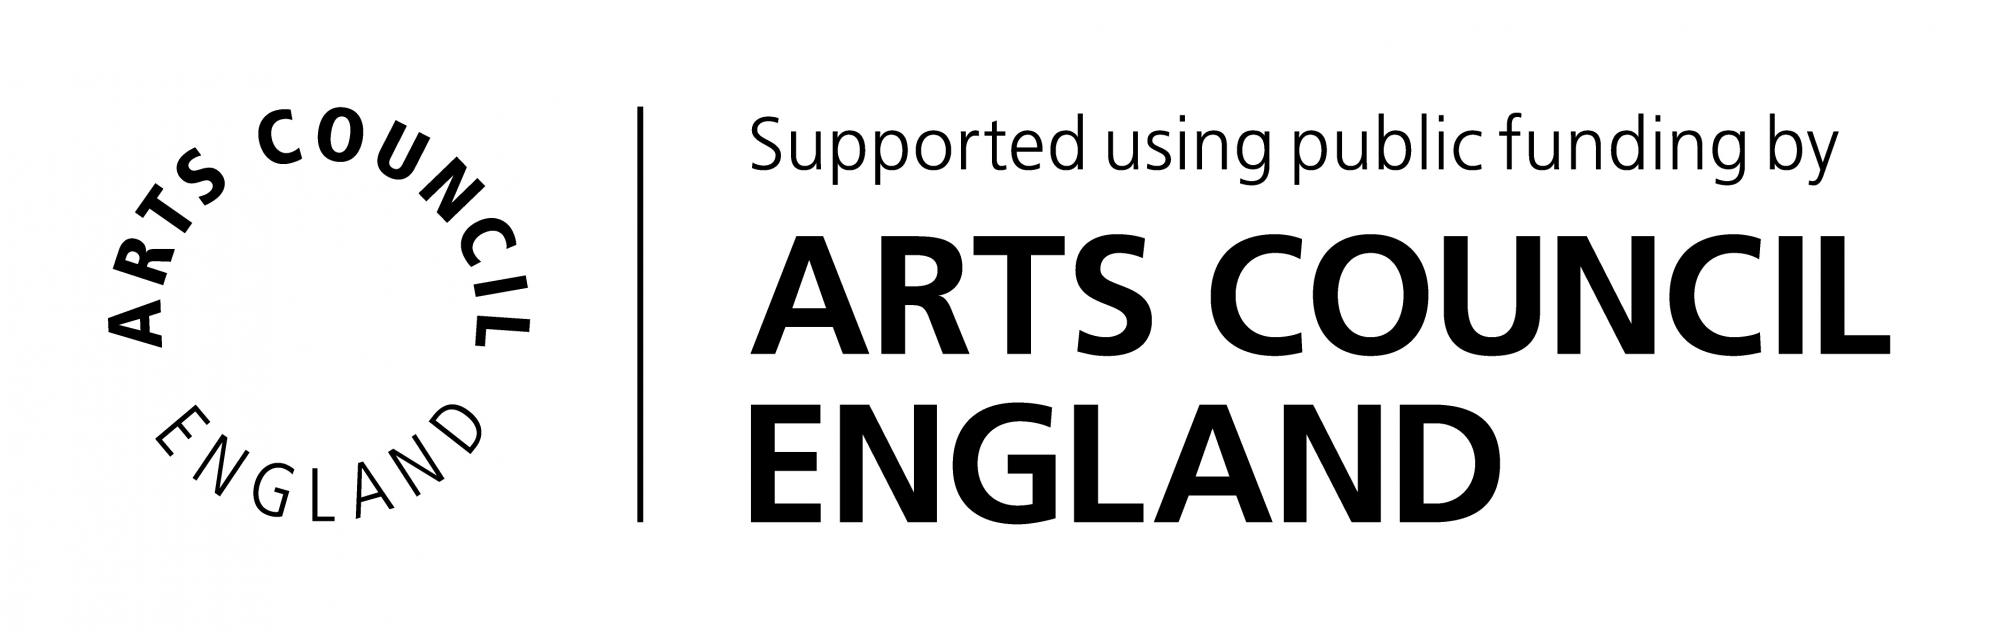 Arts Council England logo